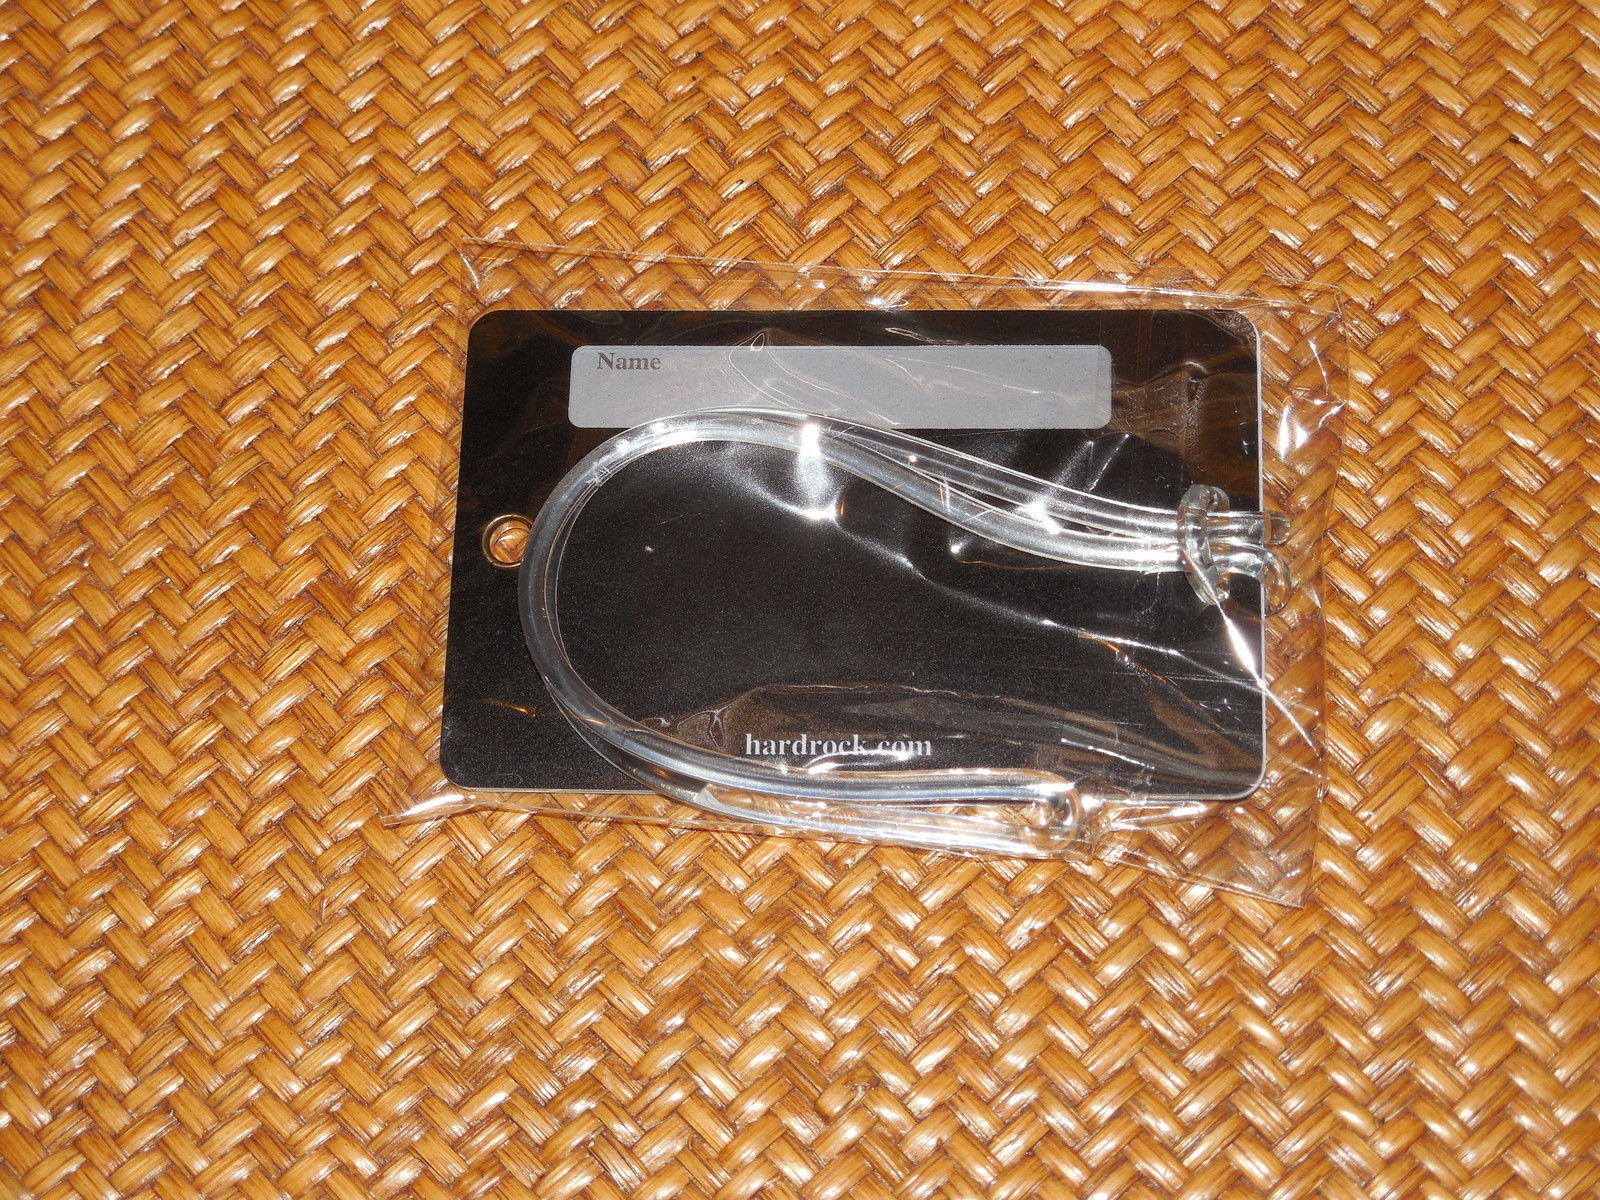 HARD ROCK CAFE FROM KEY WEST LUGGAGE TAG NEW IN SEALED PACKAGE AS PICTURED